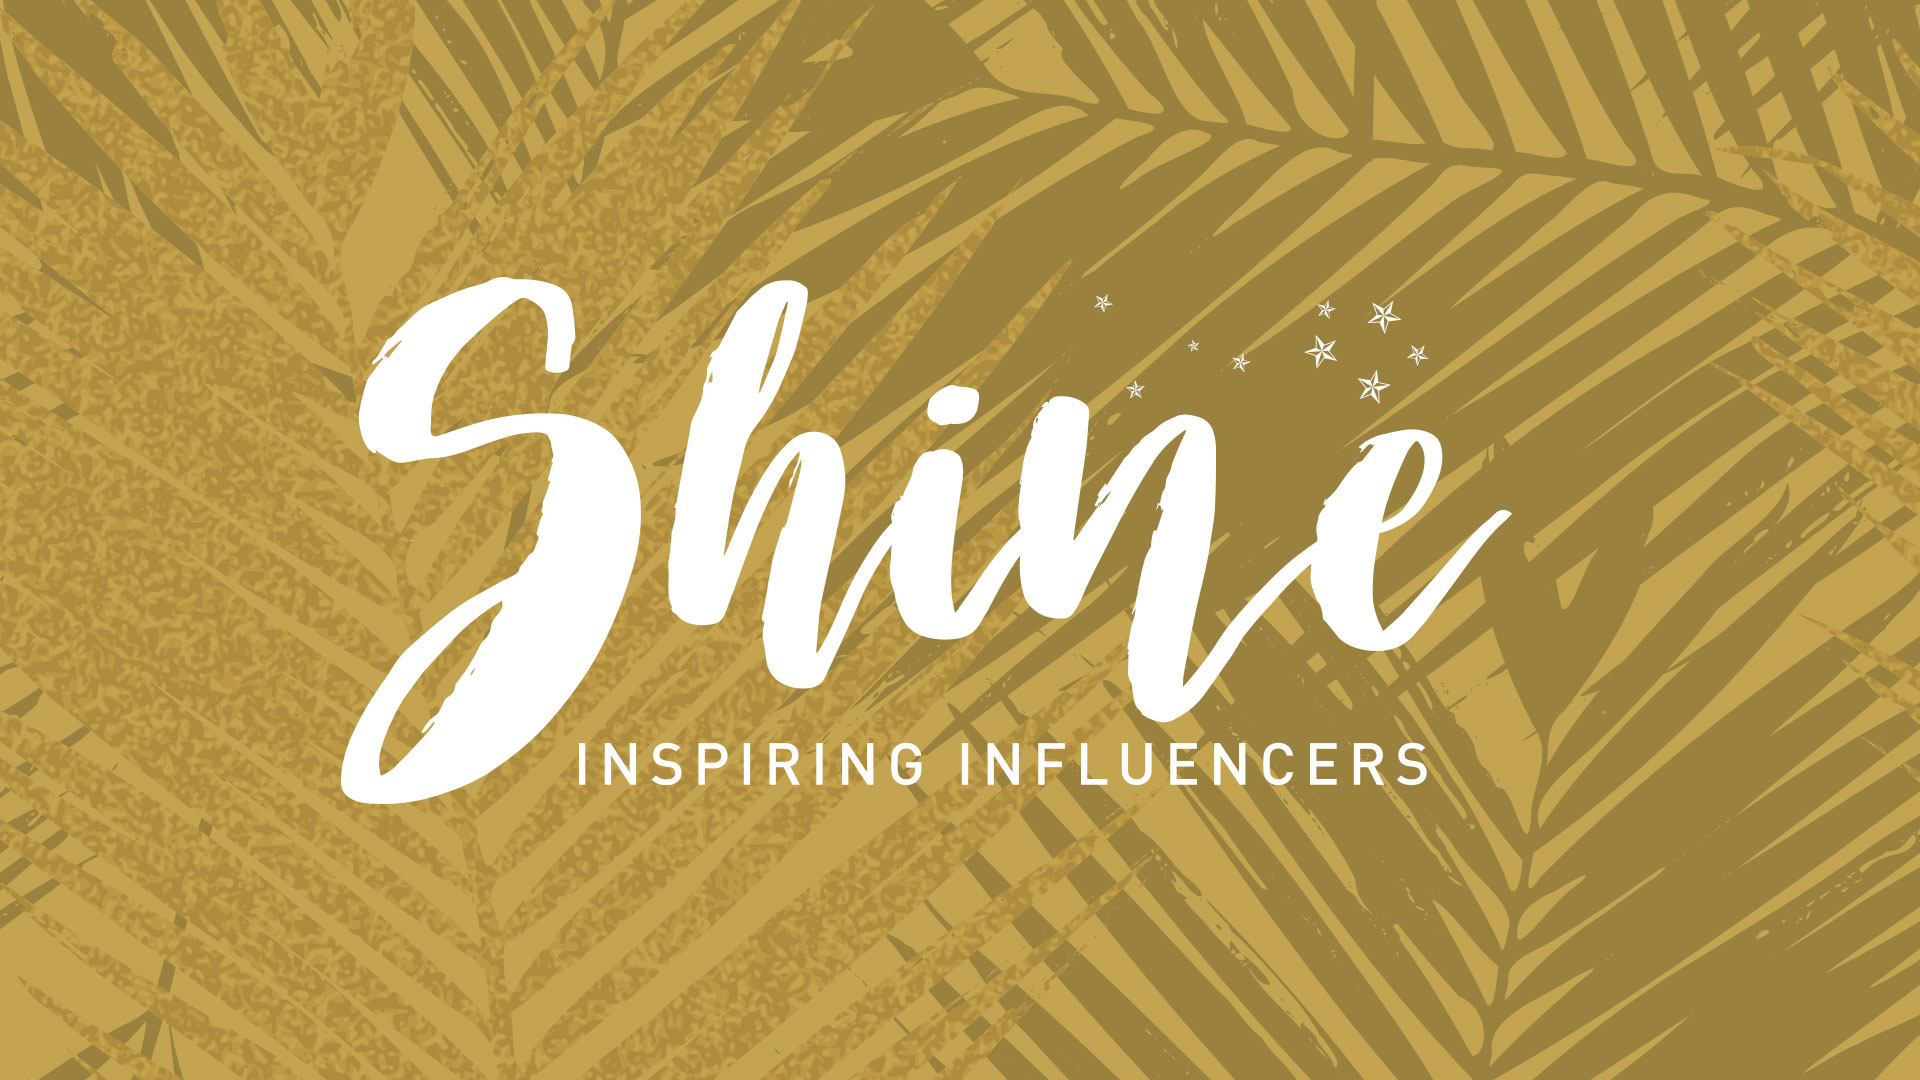 shine inspiring influencers